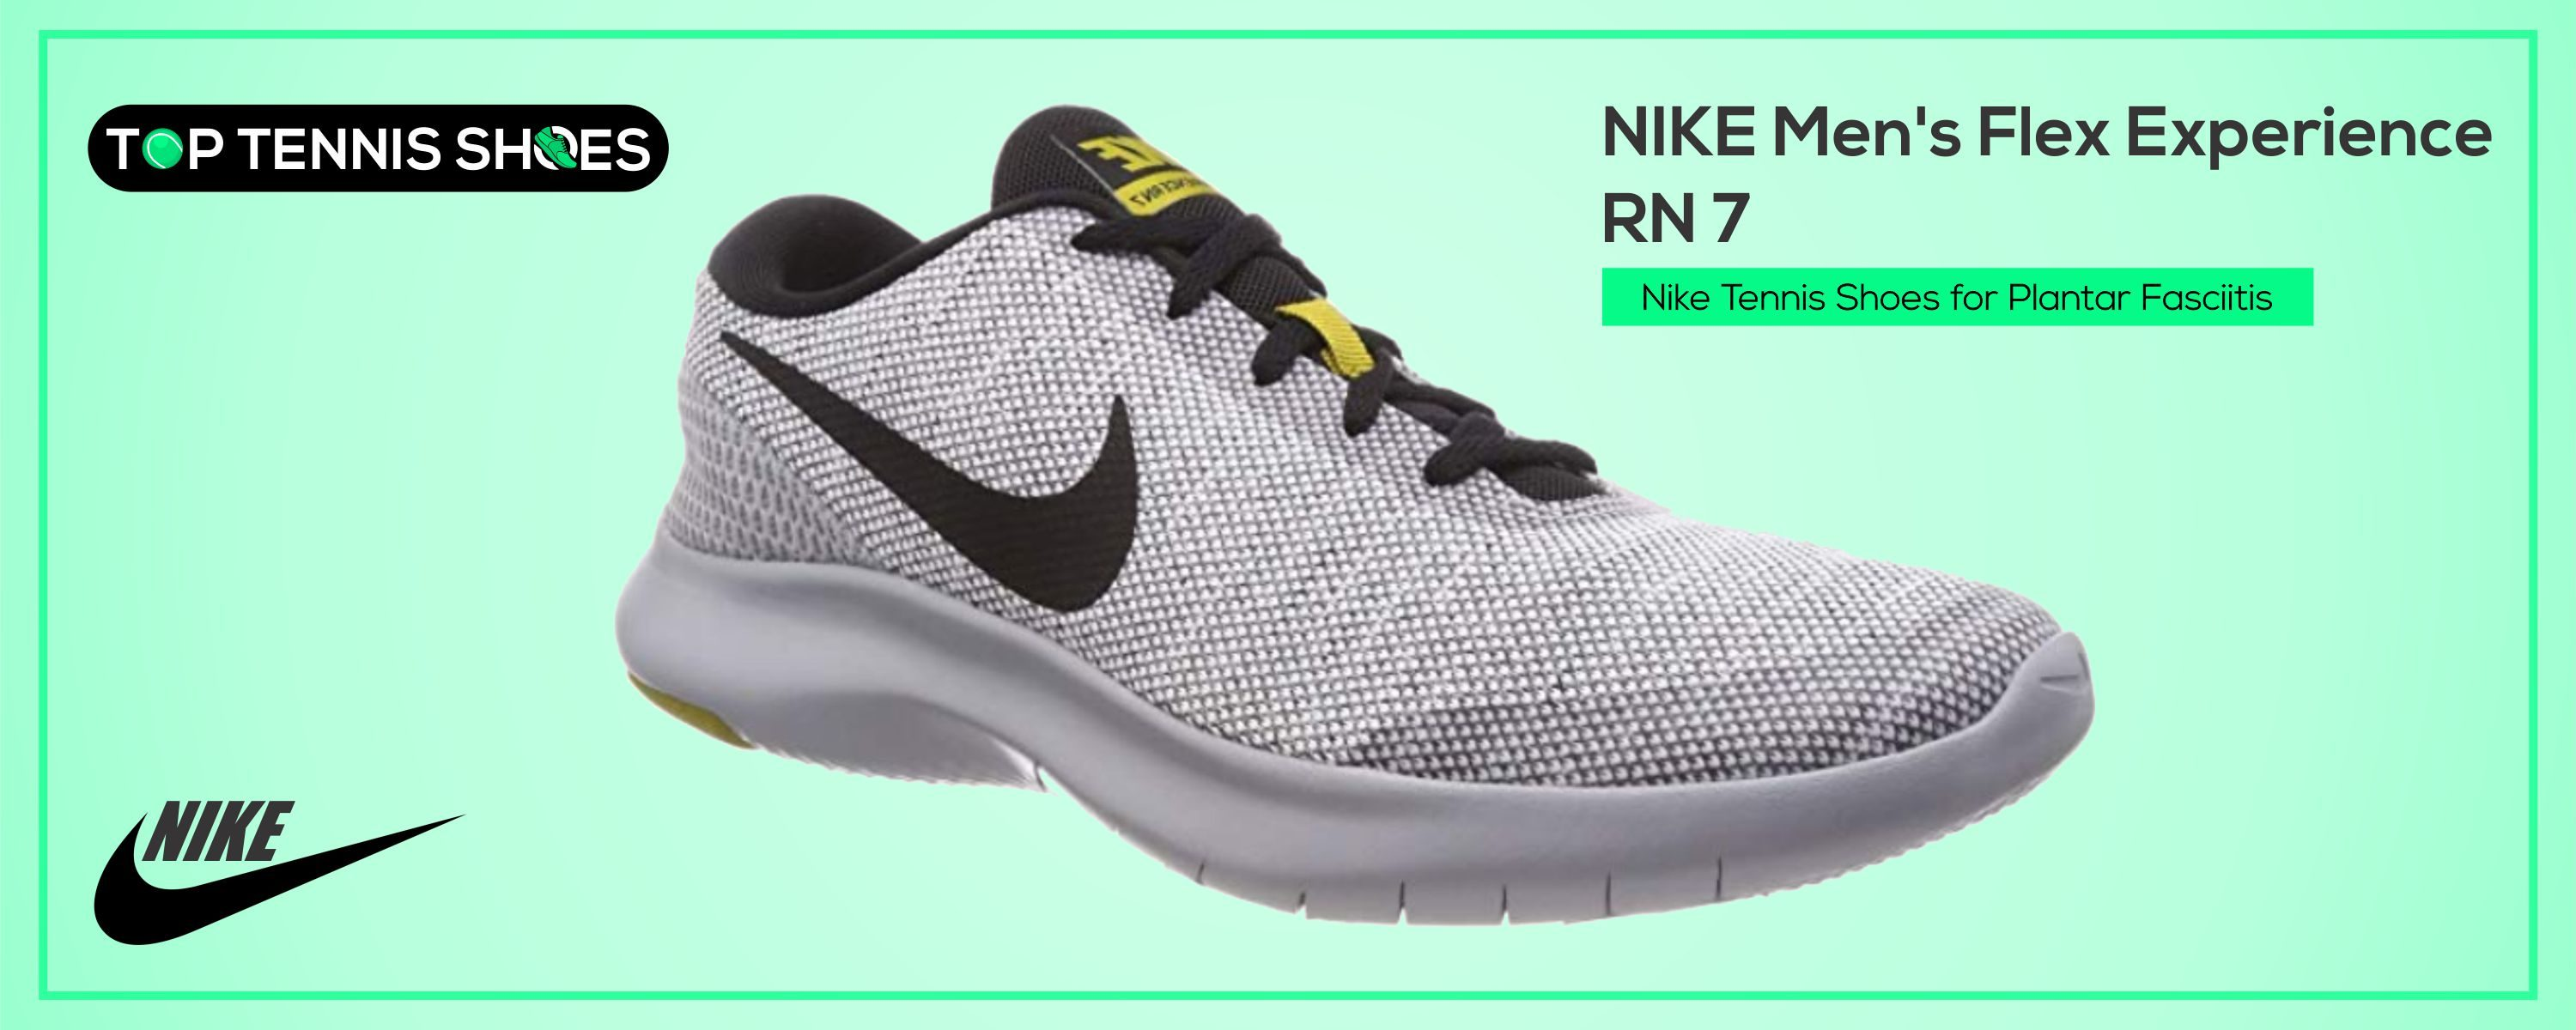 Nike Tennis Shoes for Plantar Fasciitis